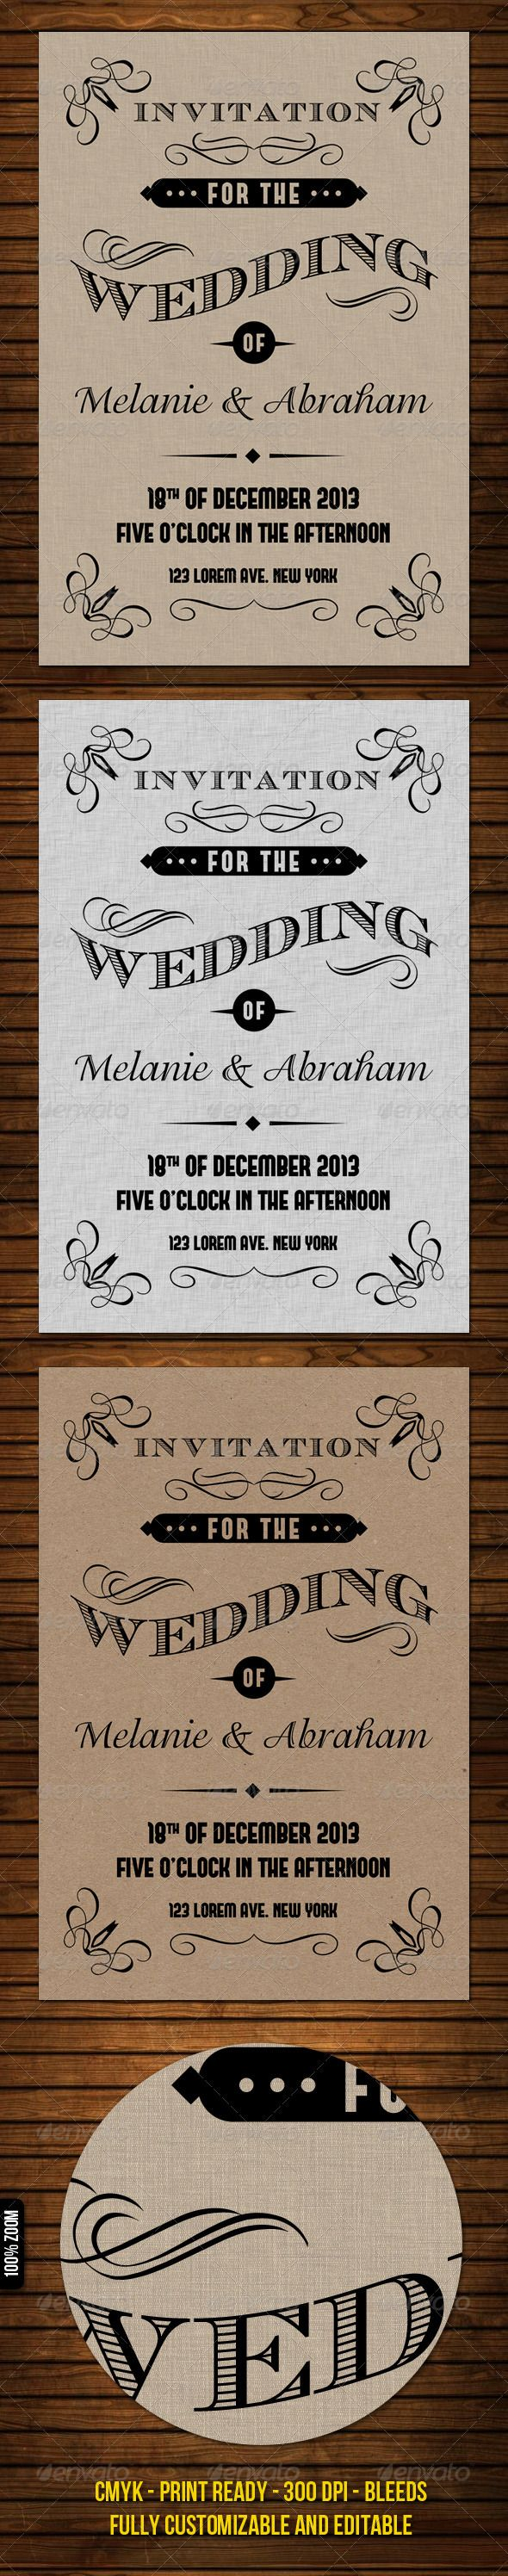 wedding renewal invitation ideas%0A Old Vintage Wedding Invitation